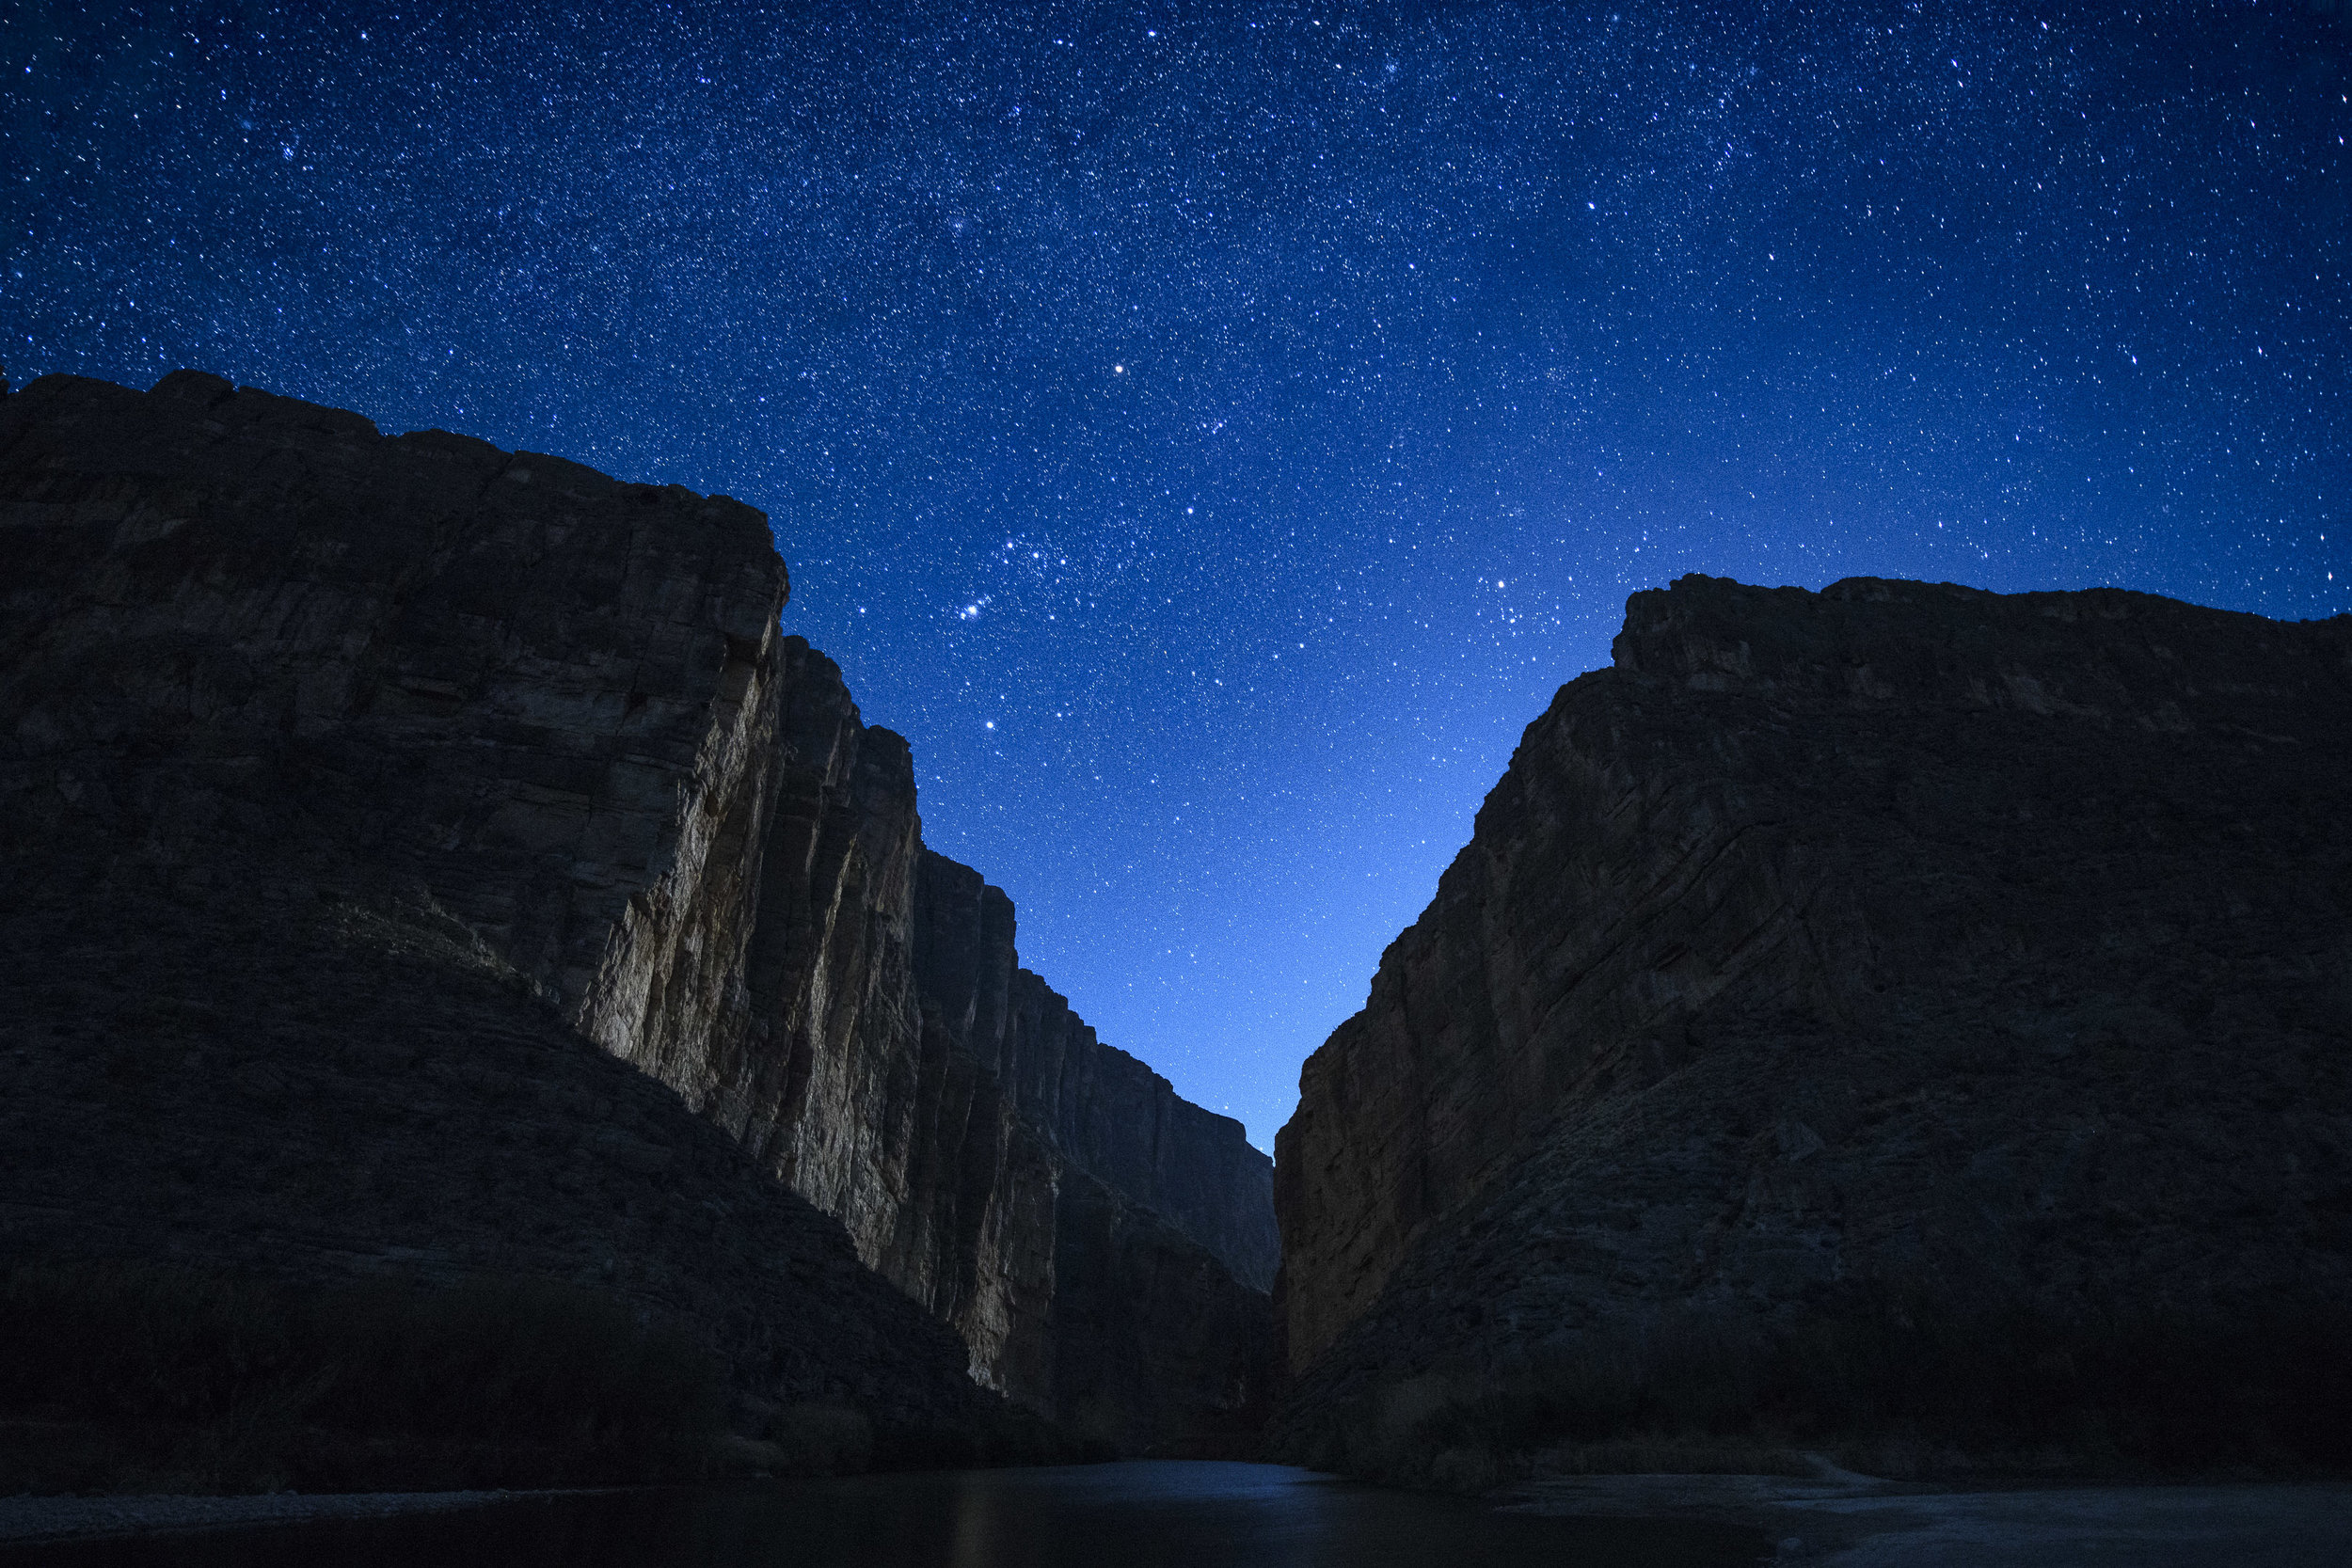 Big Bend National Park—WAITLIST ONLY - Explore and photograph raw desert landscapes and rock formations under some of the darkest skies in North America.